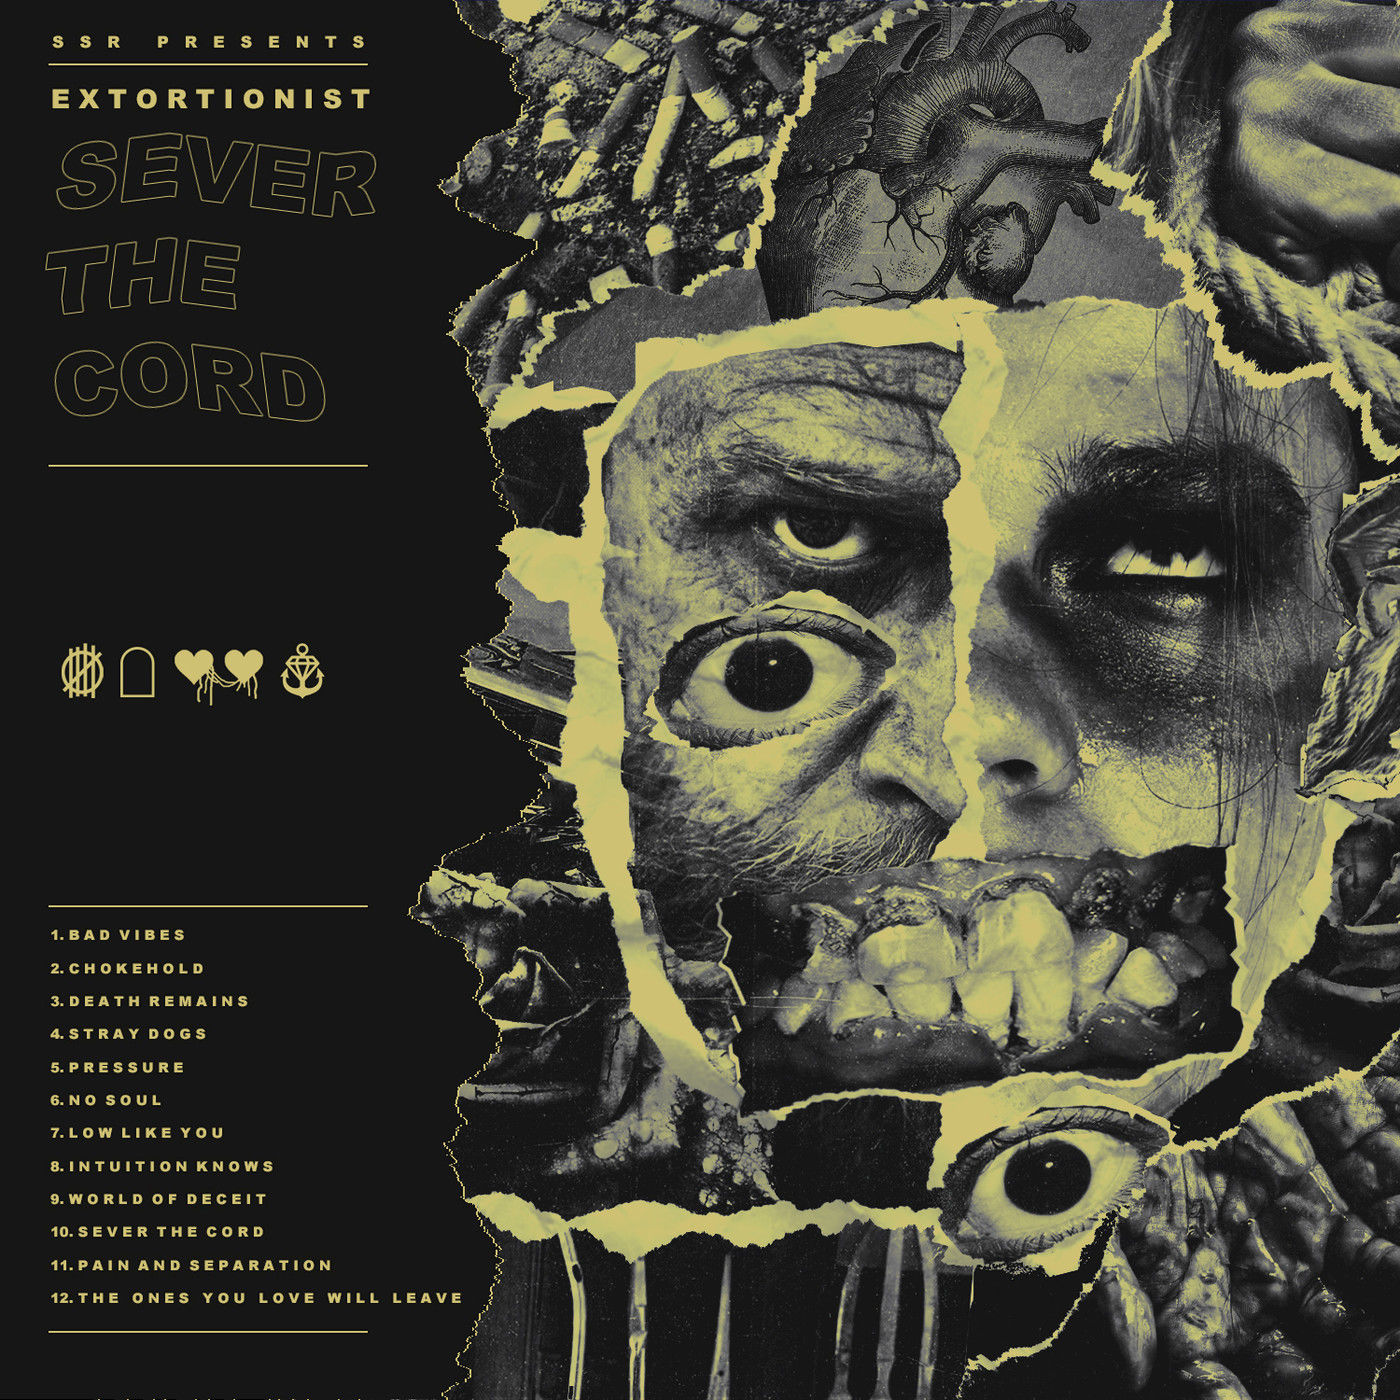 Extortionist - Sever the Cord (2019)